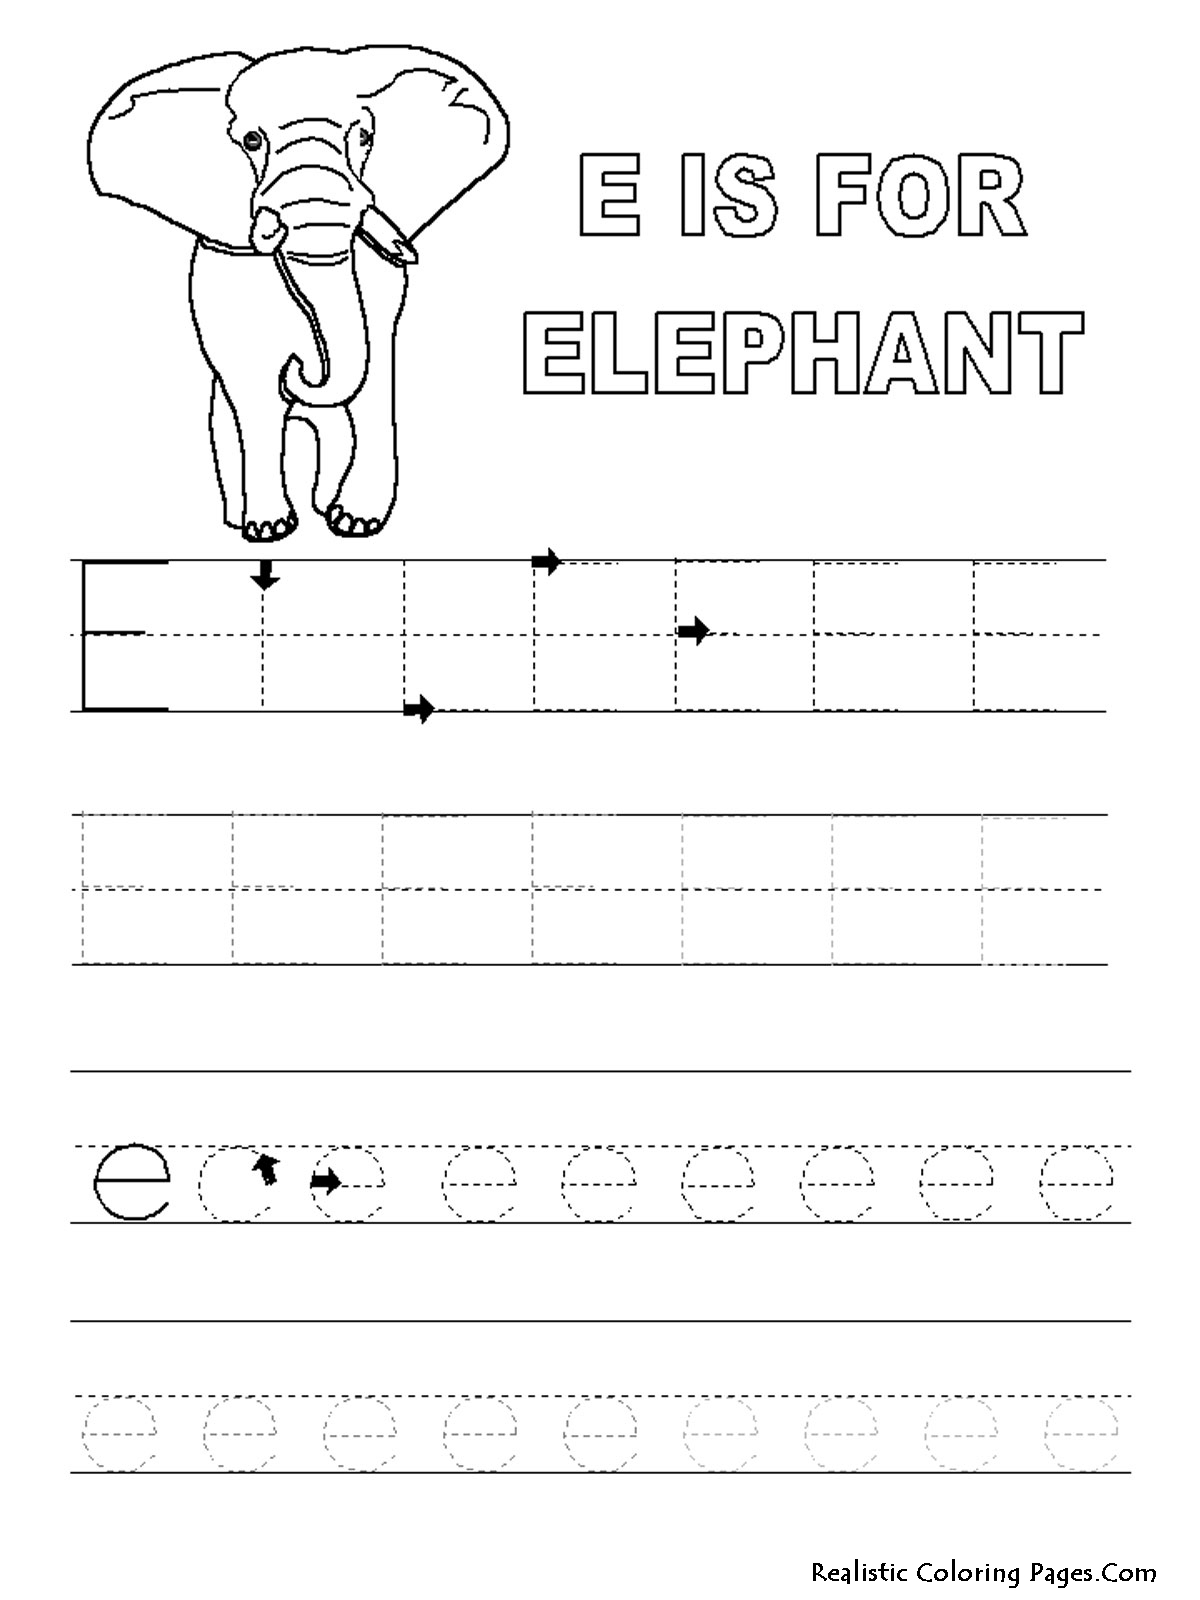 letter tracing pages alphabet tracing letter f coloring pages 23280 | Alphabet Tracer Pages E Elephant